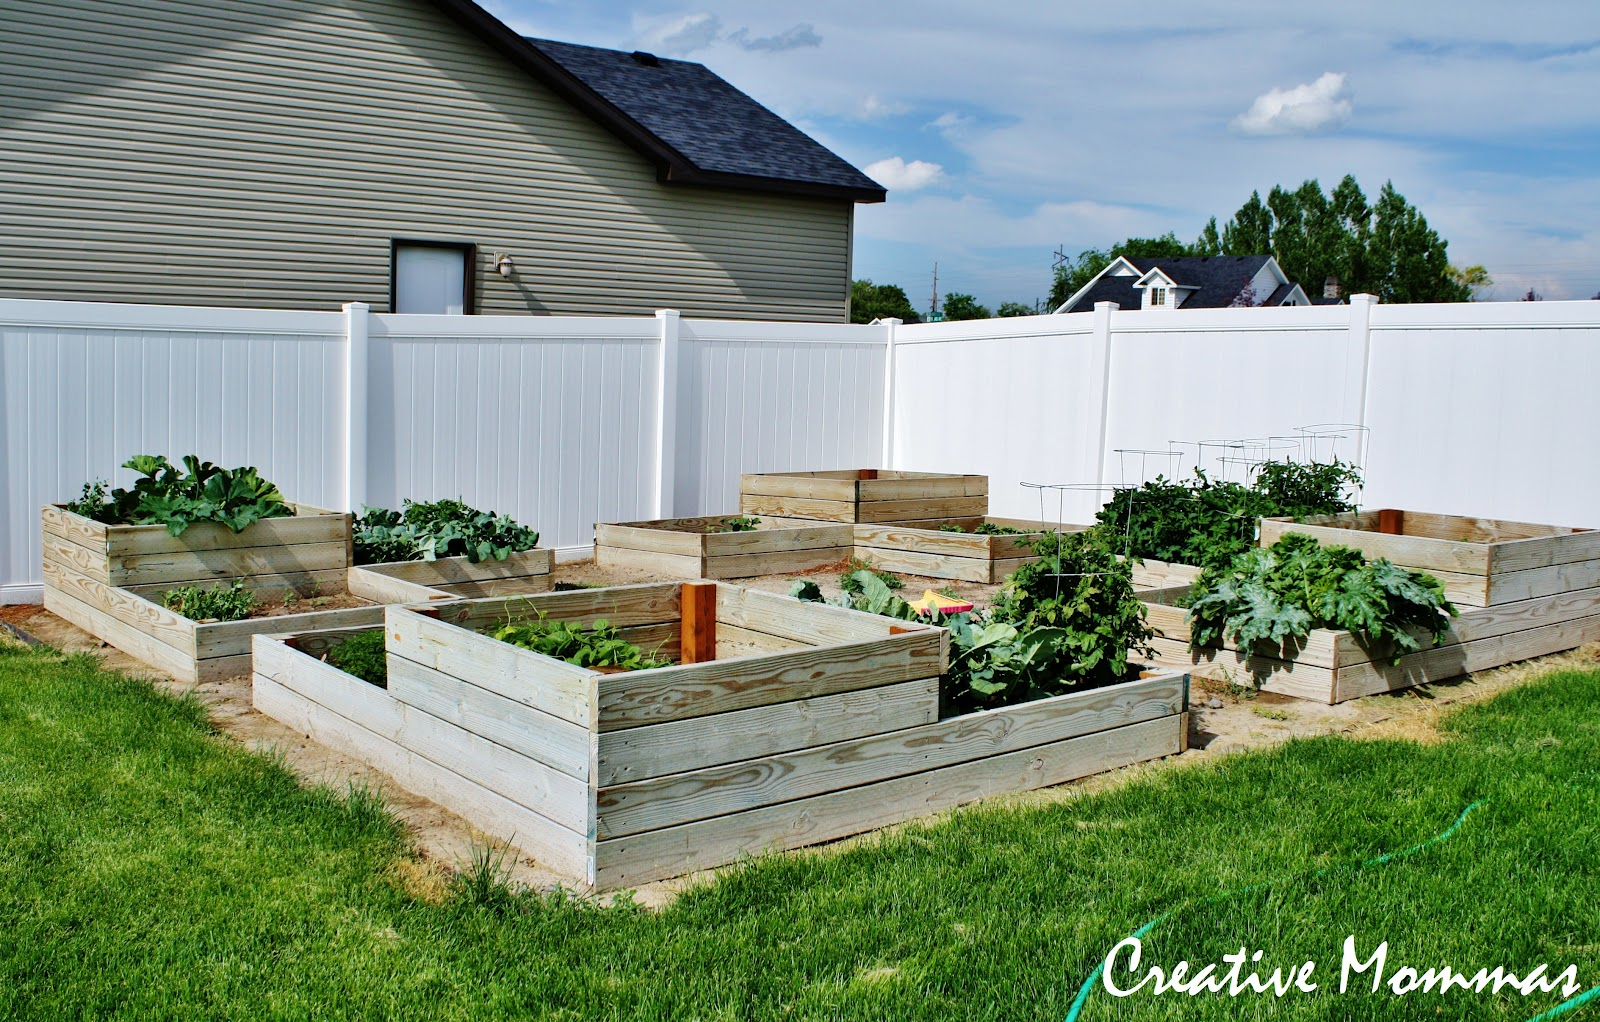 Creative Mommas DIY Tiered Raised Garden Beds